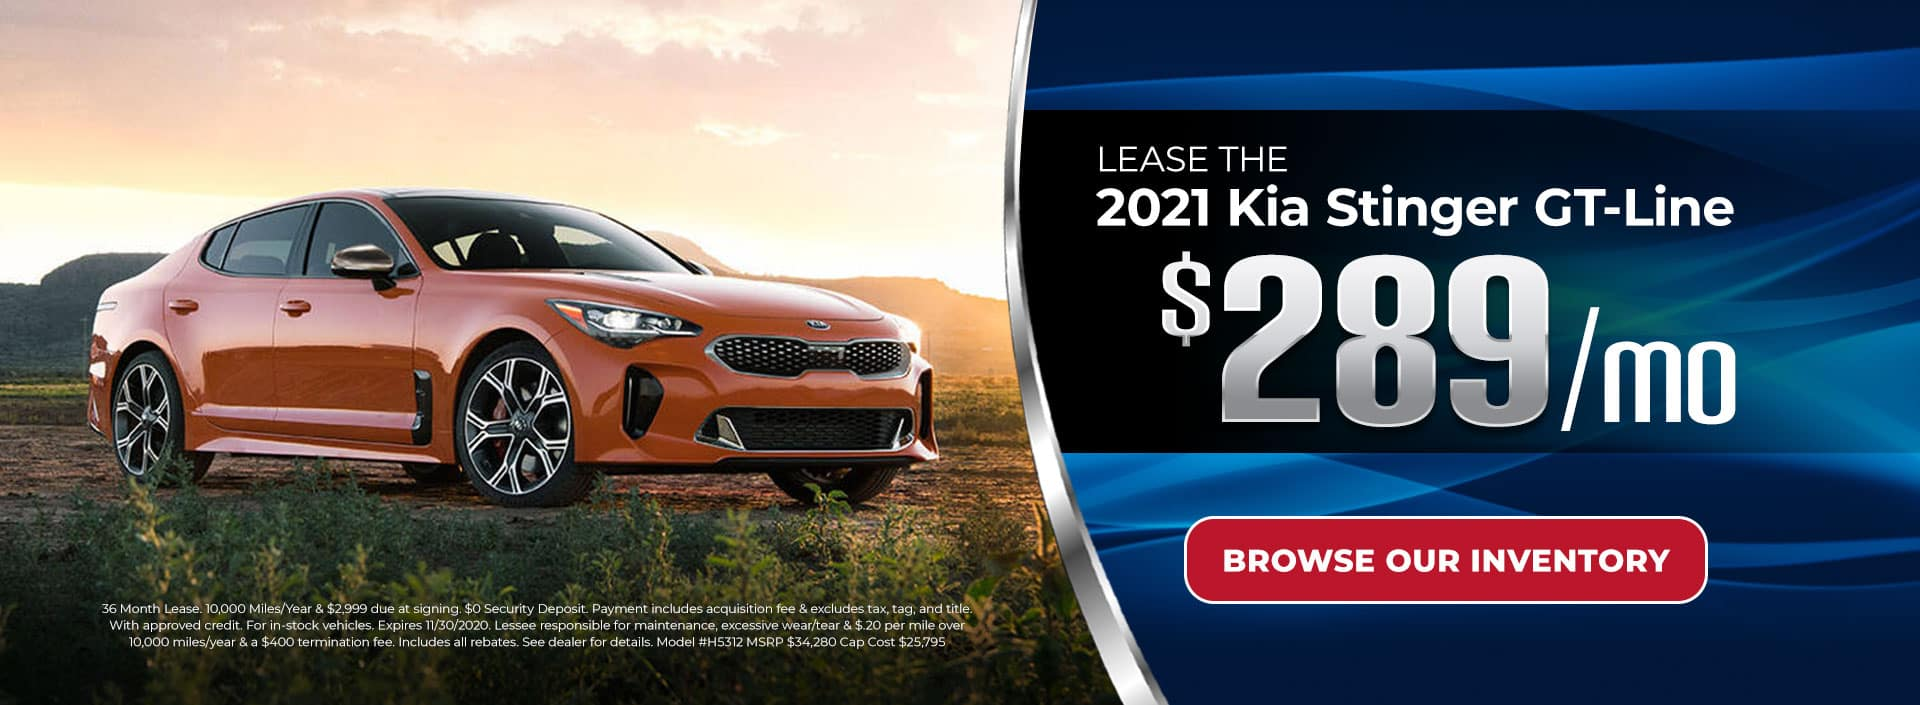 Lease 2021 Kia Stinger GT-Line for $289/mo for 36 months in Chamblee, GA